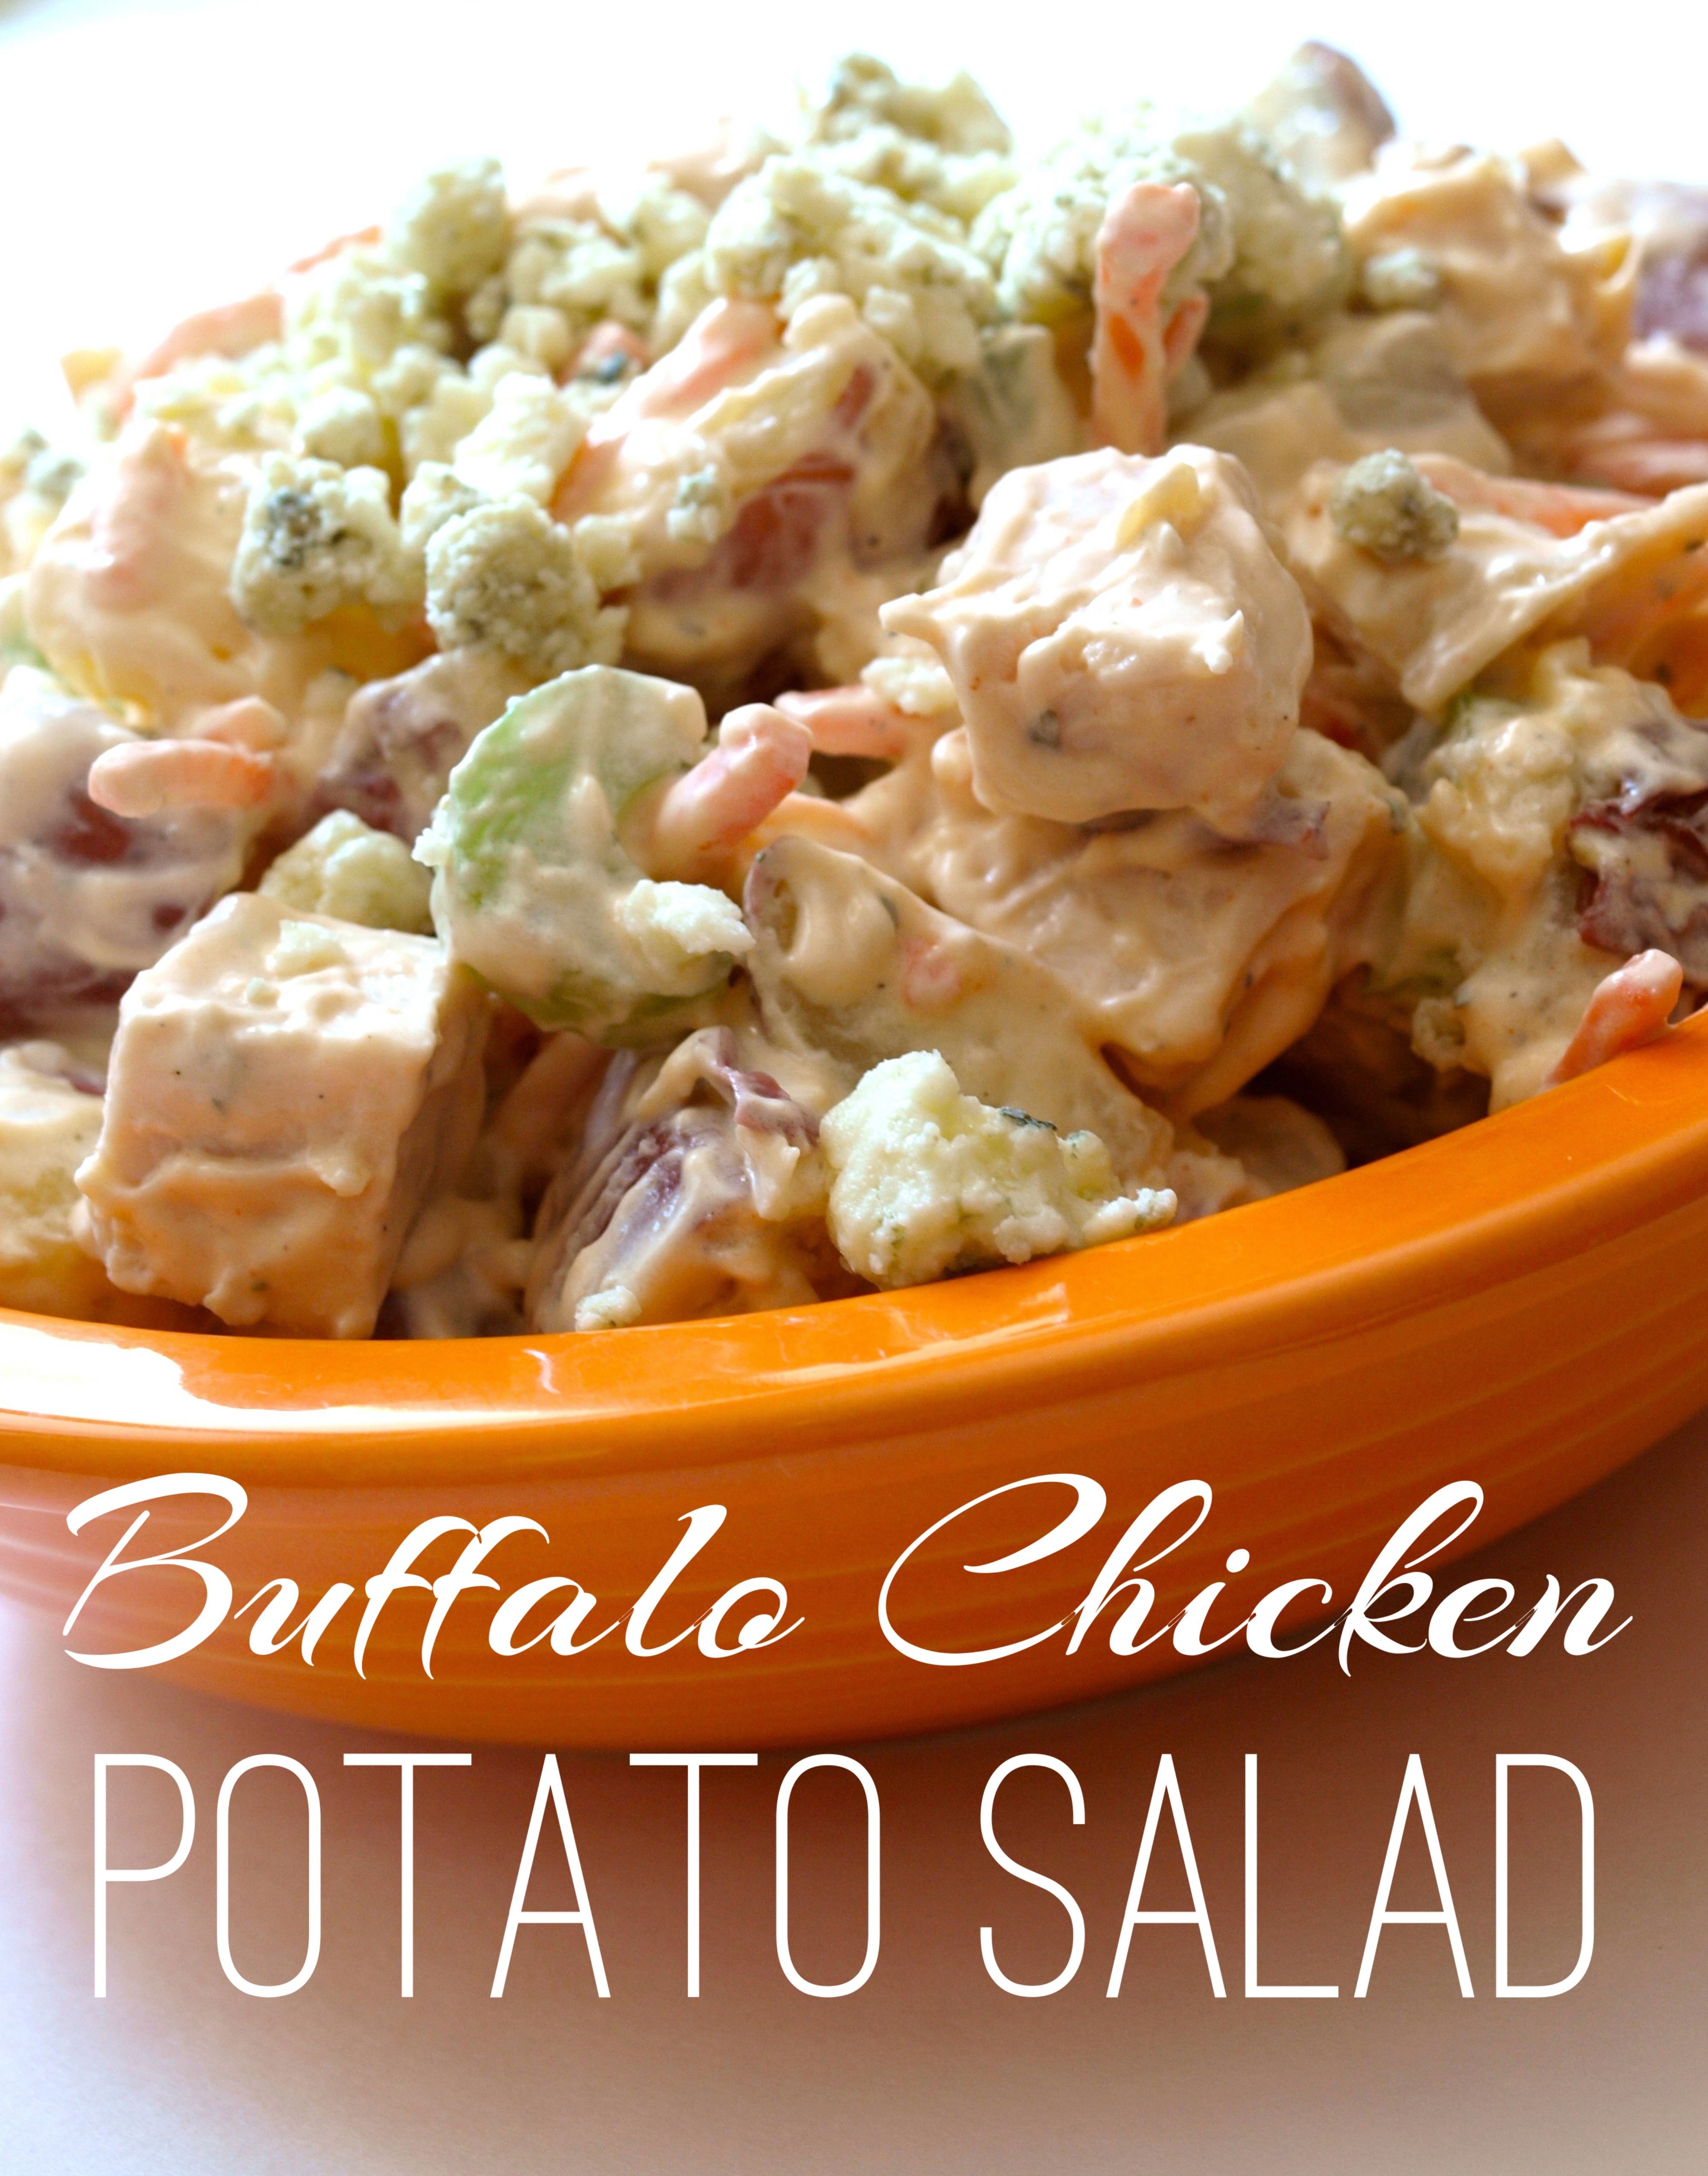 Buffalo Chicken Potato Salad - createwithclaudia.com